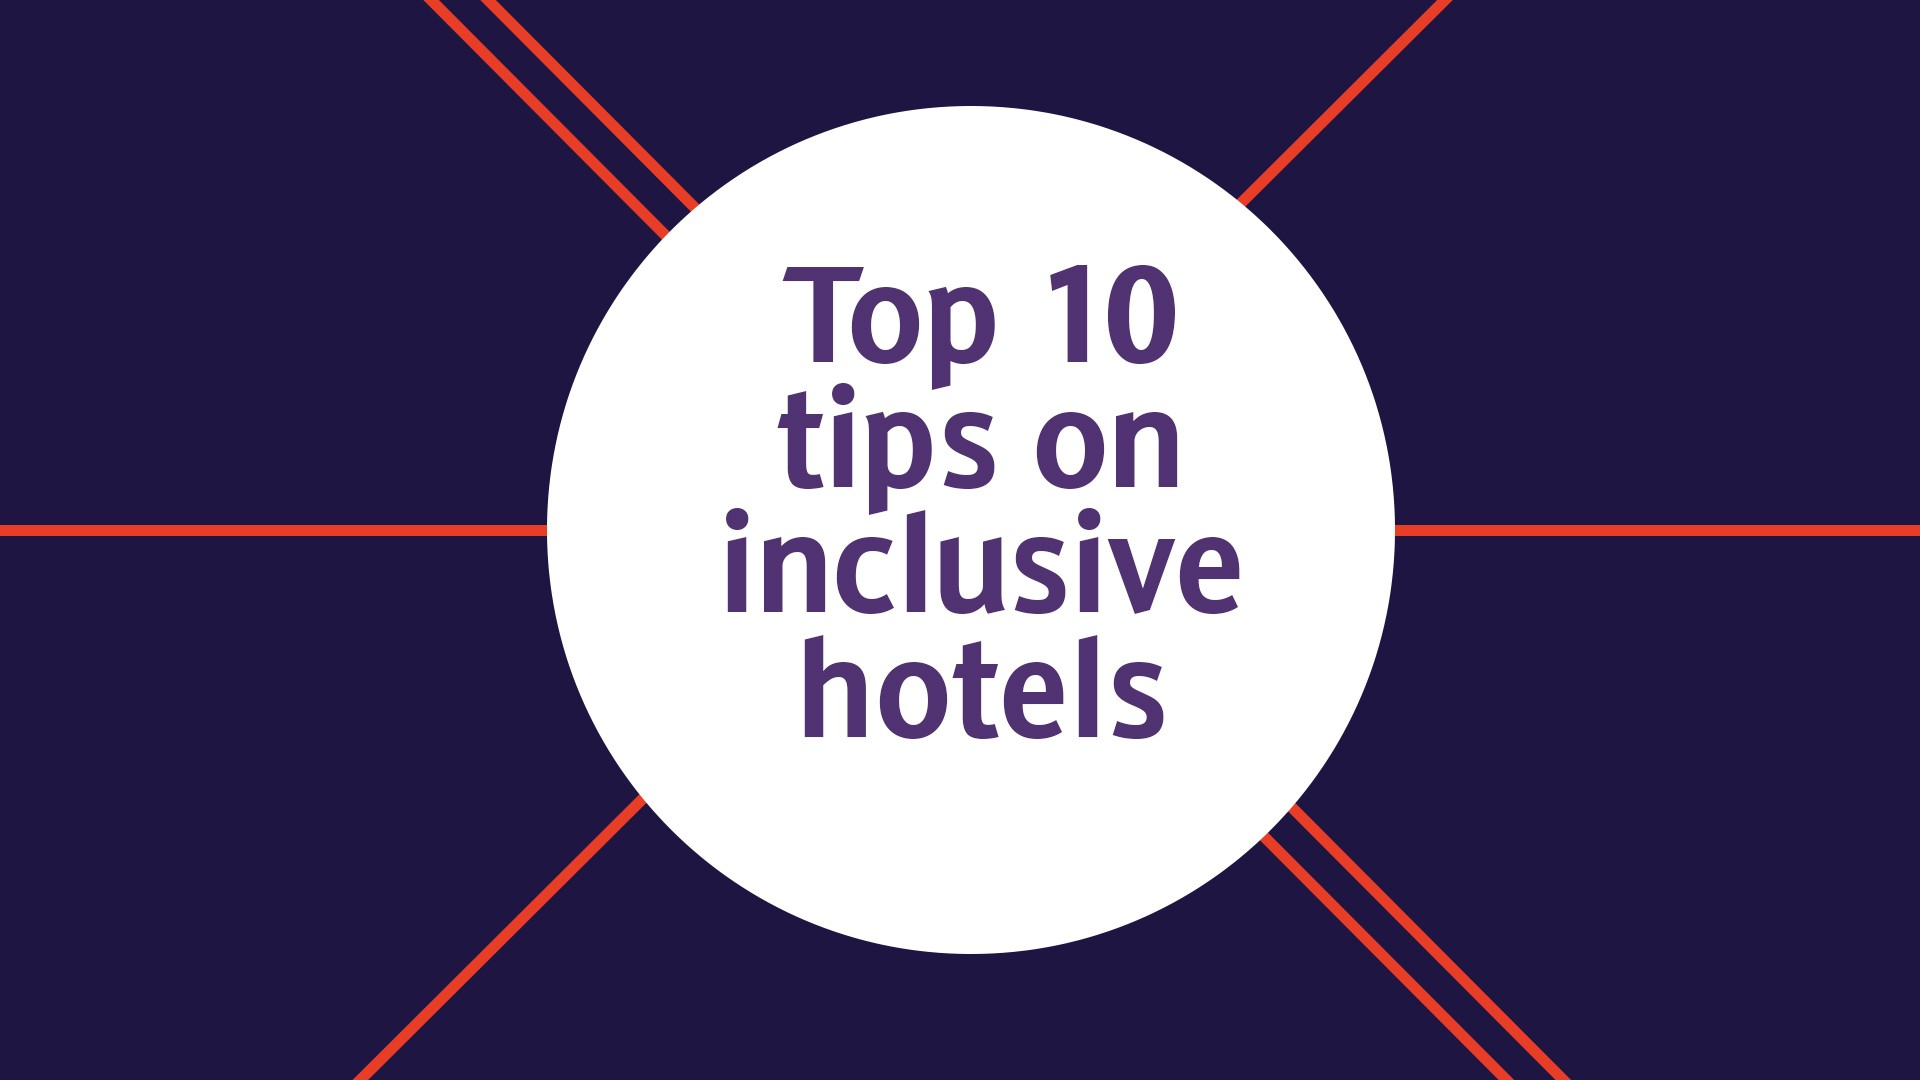 Top 10 tips on inclusive hotels